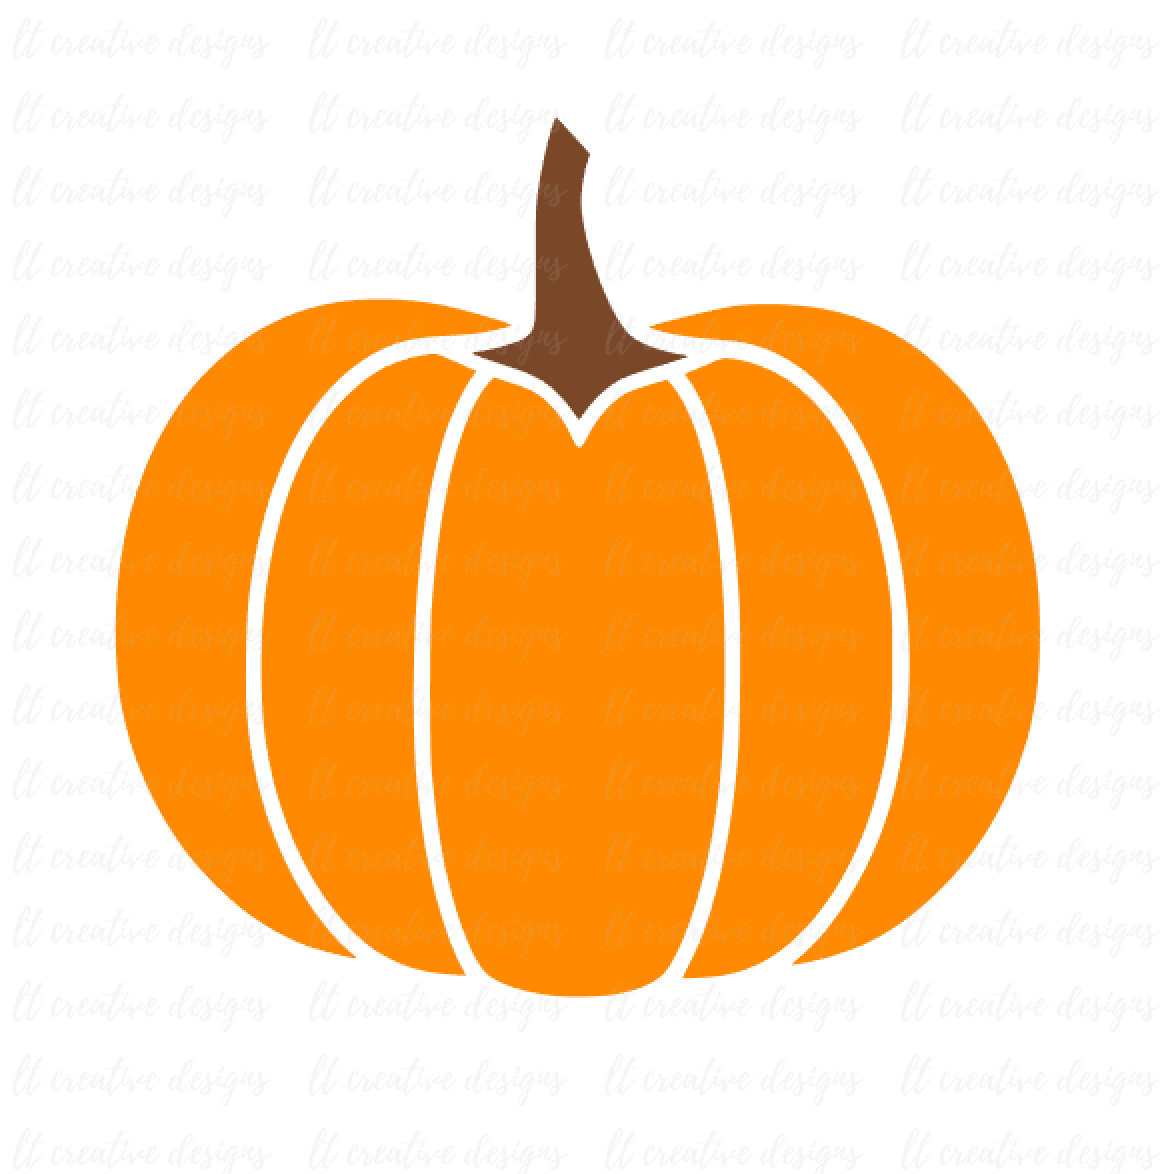 1170x1174 Pumpkin Svg Pumpkin Fall Pumpkin Svg Pumpkin Outline Svg